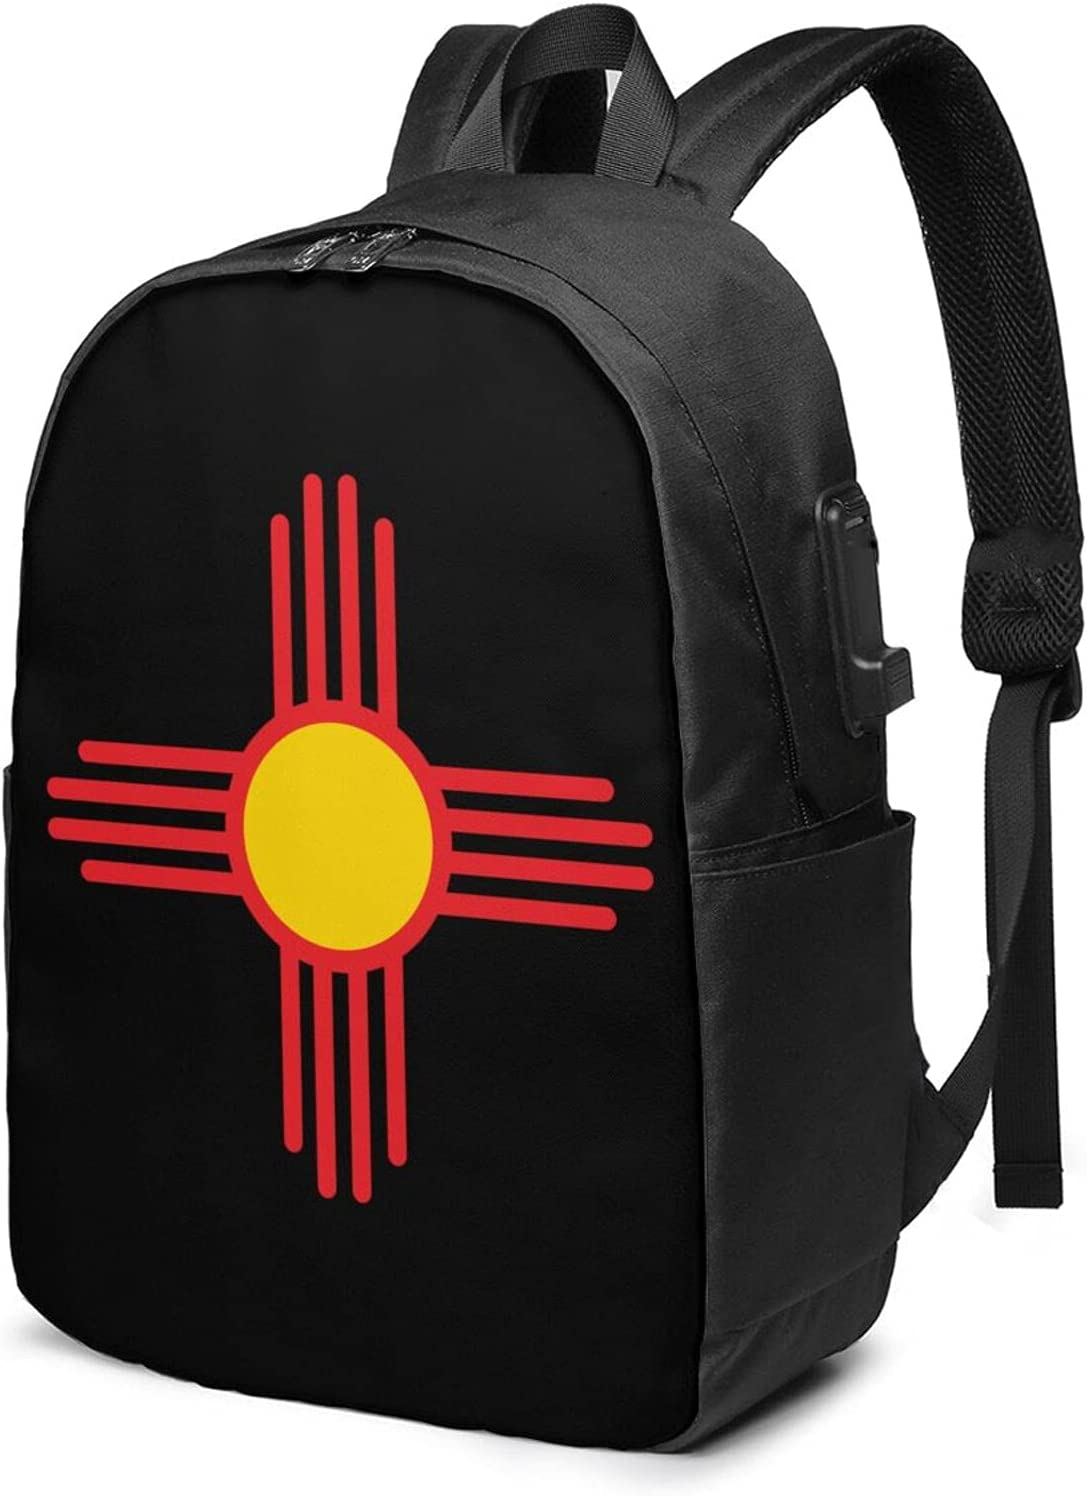 New Mexico Zia Seasonal Wrap Introduction Symbol Laptop Backpack Charging Port 17 Usb With Max 85% OFF